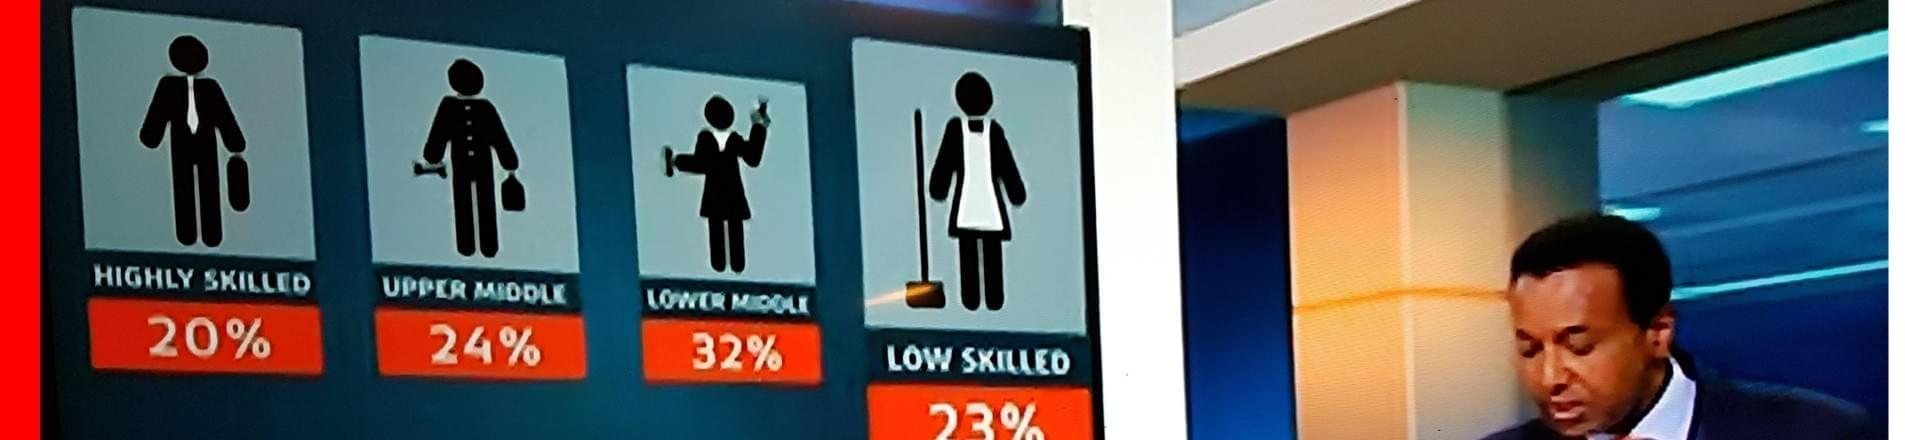 A picture depicting men in highly skilled jobs and women in lower skilled jobs